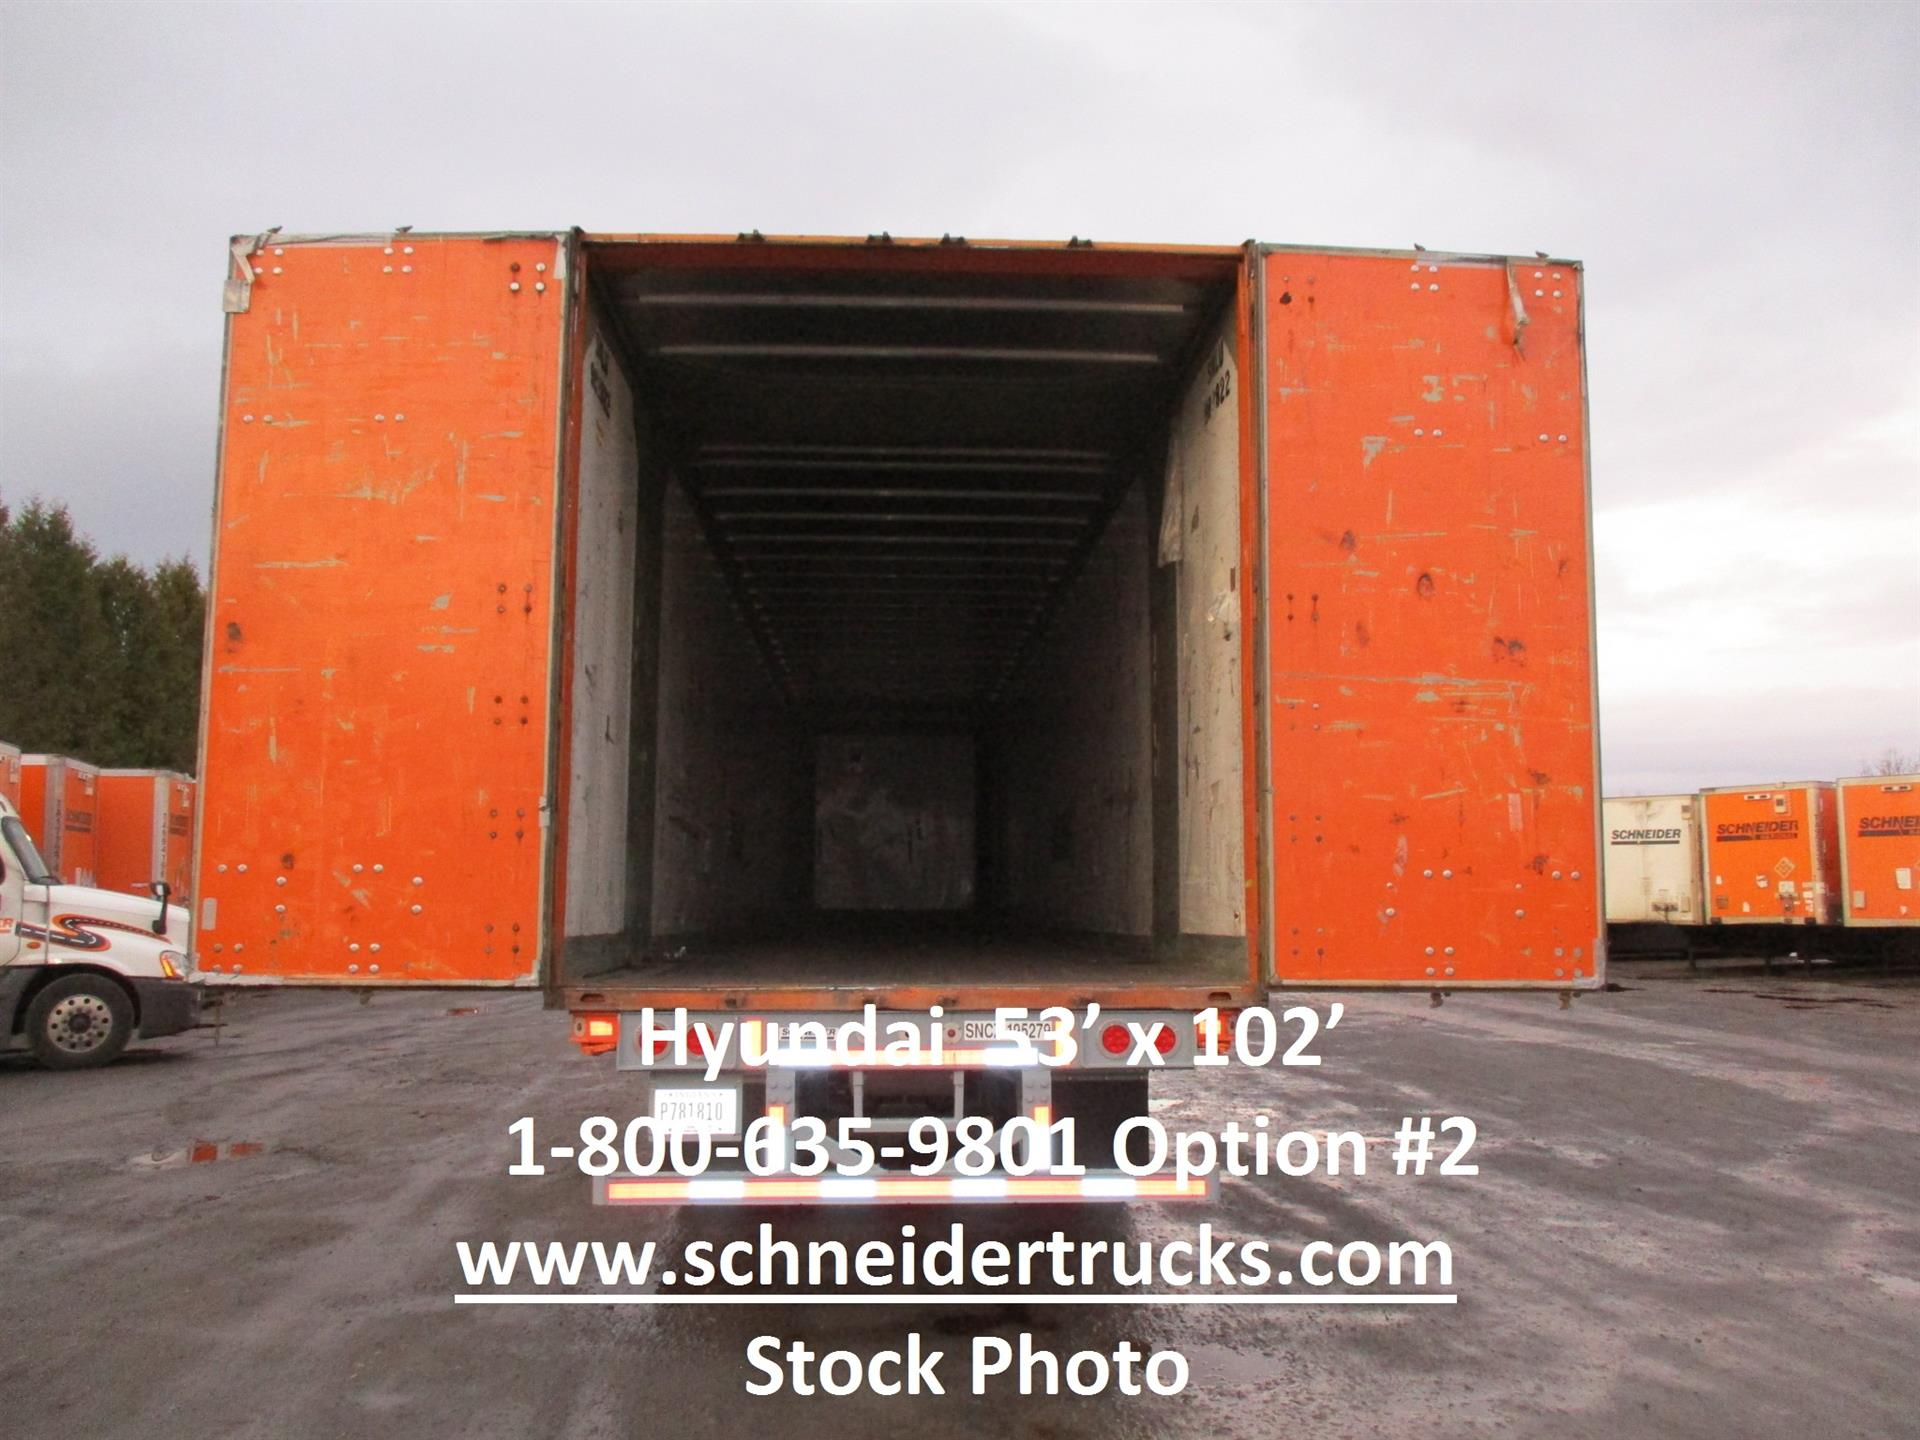 2006 Hyundai Container for sale-59283295